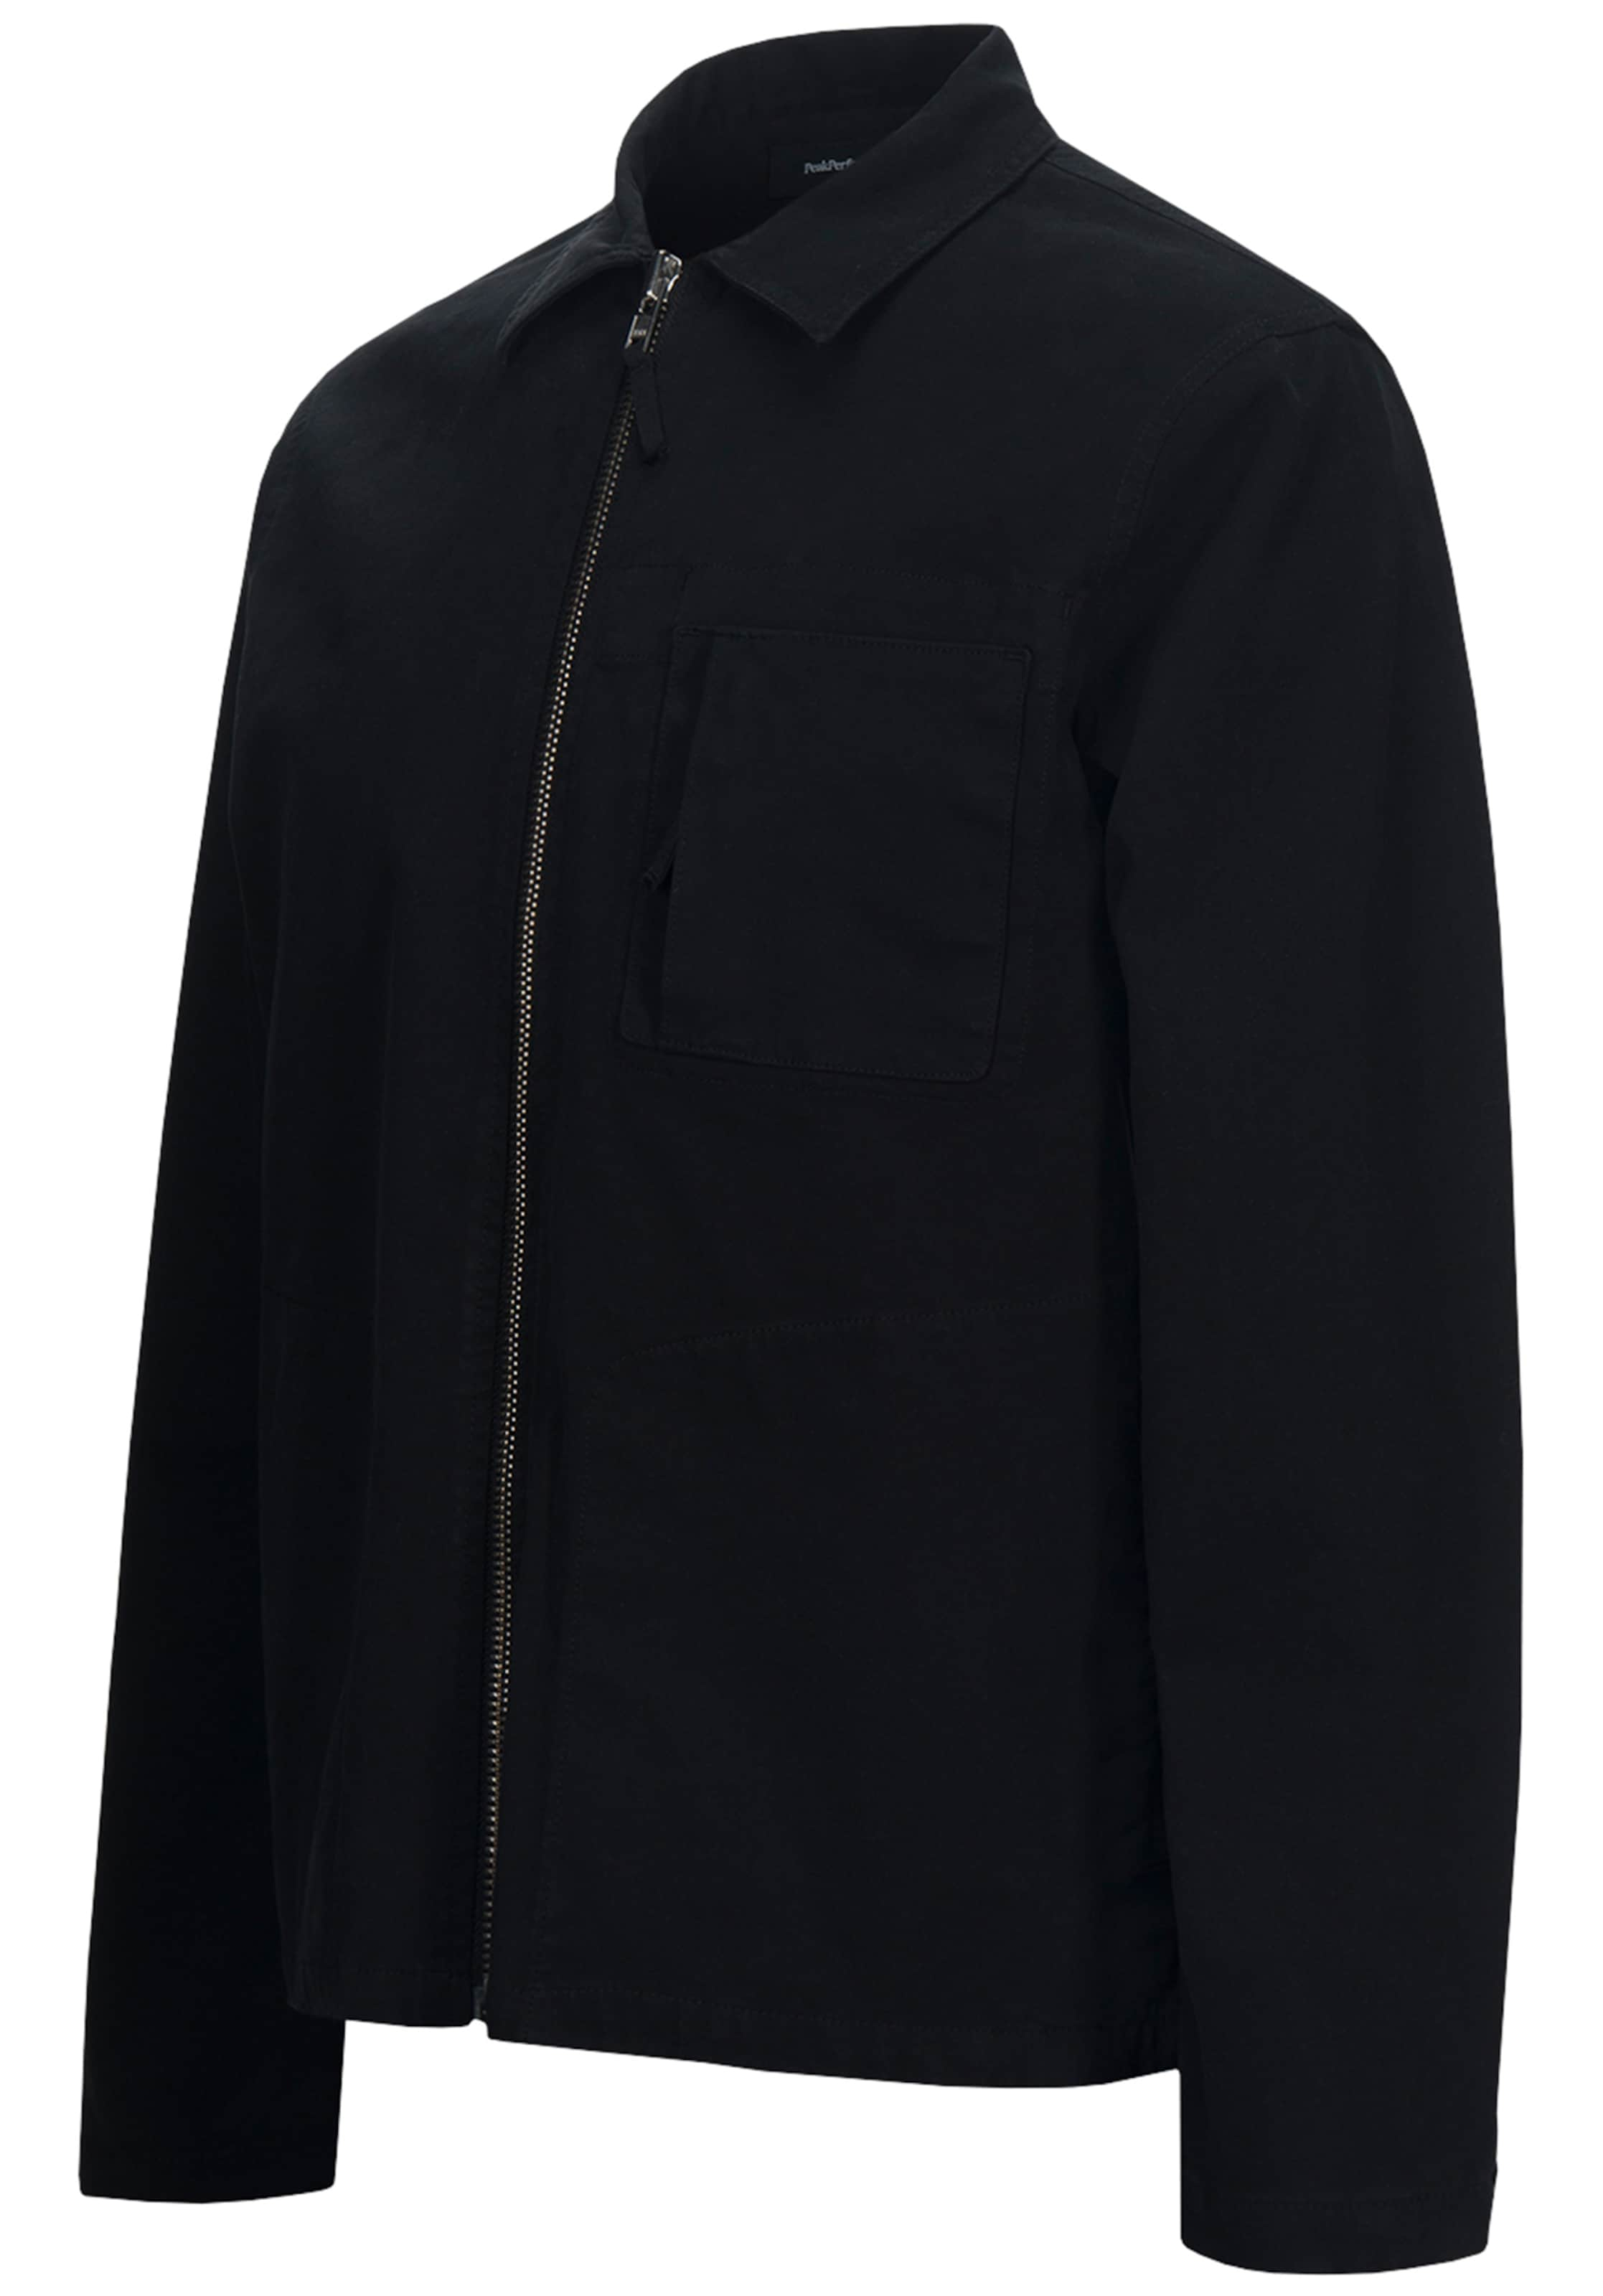 Performance 'work' Peak In Schwarz Jacke Y7gyf6b